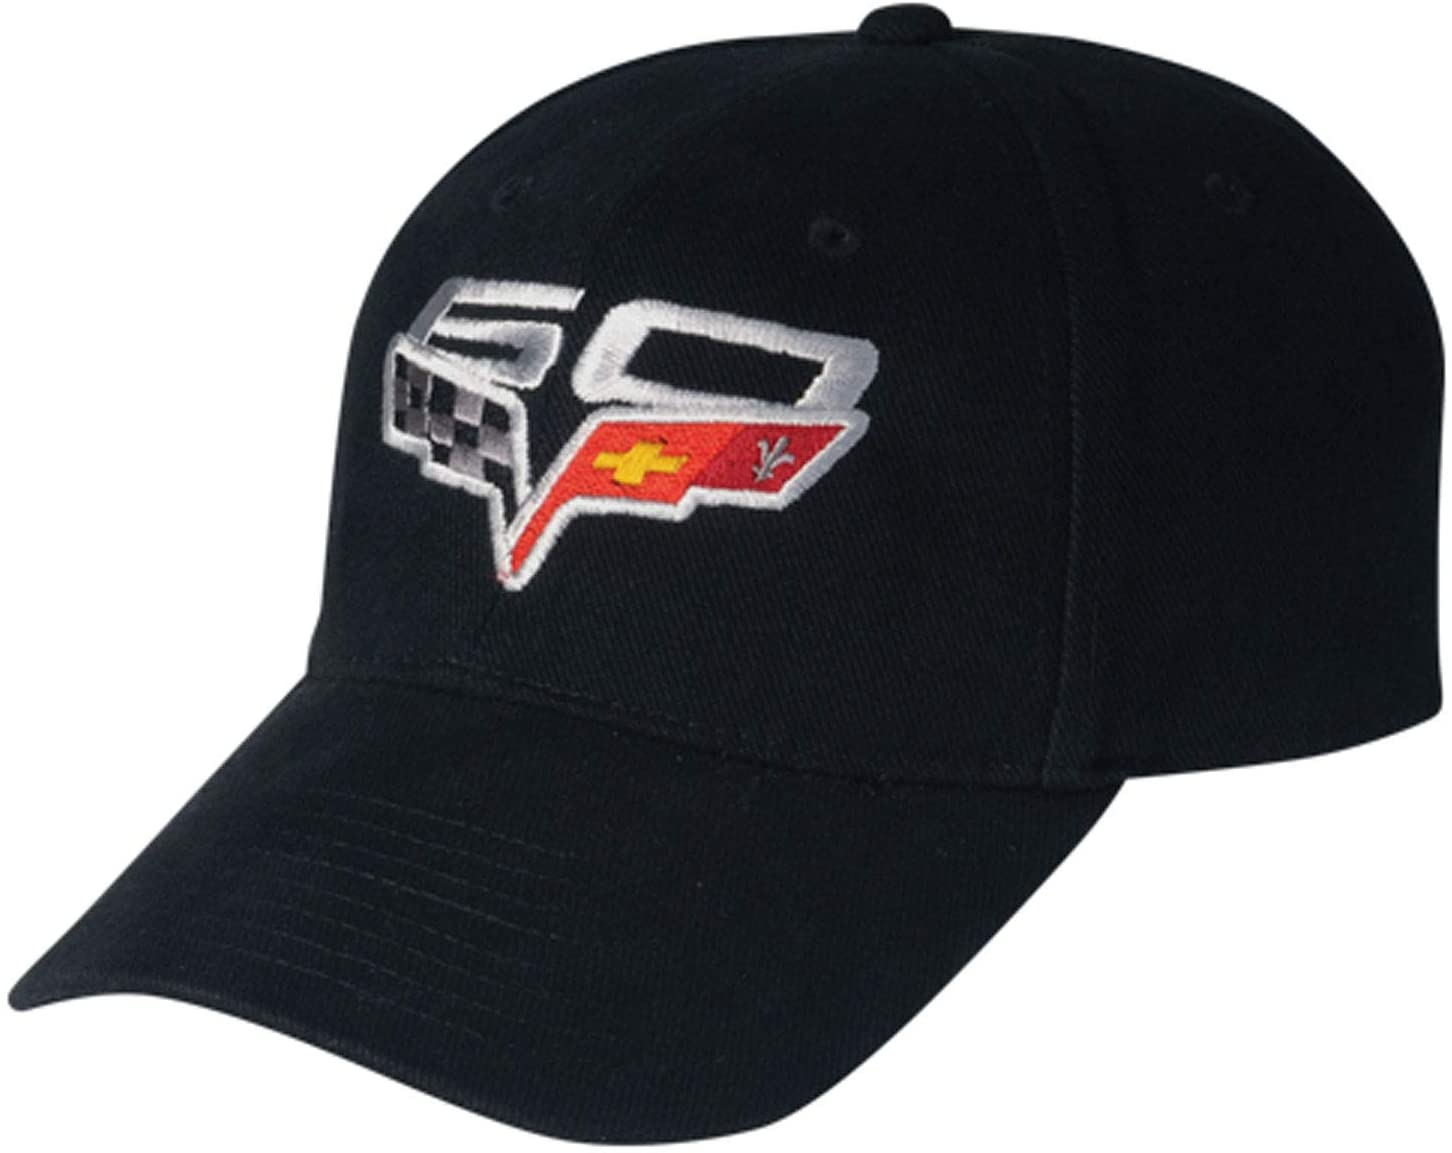 Gregs Automotive 60th Anniversary Black Logo Hat Cap Compatible with Chevrolet Chevy Corvette - Bundle with Driving Style Decal